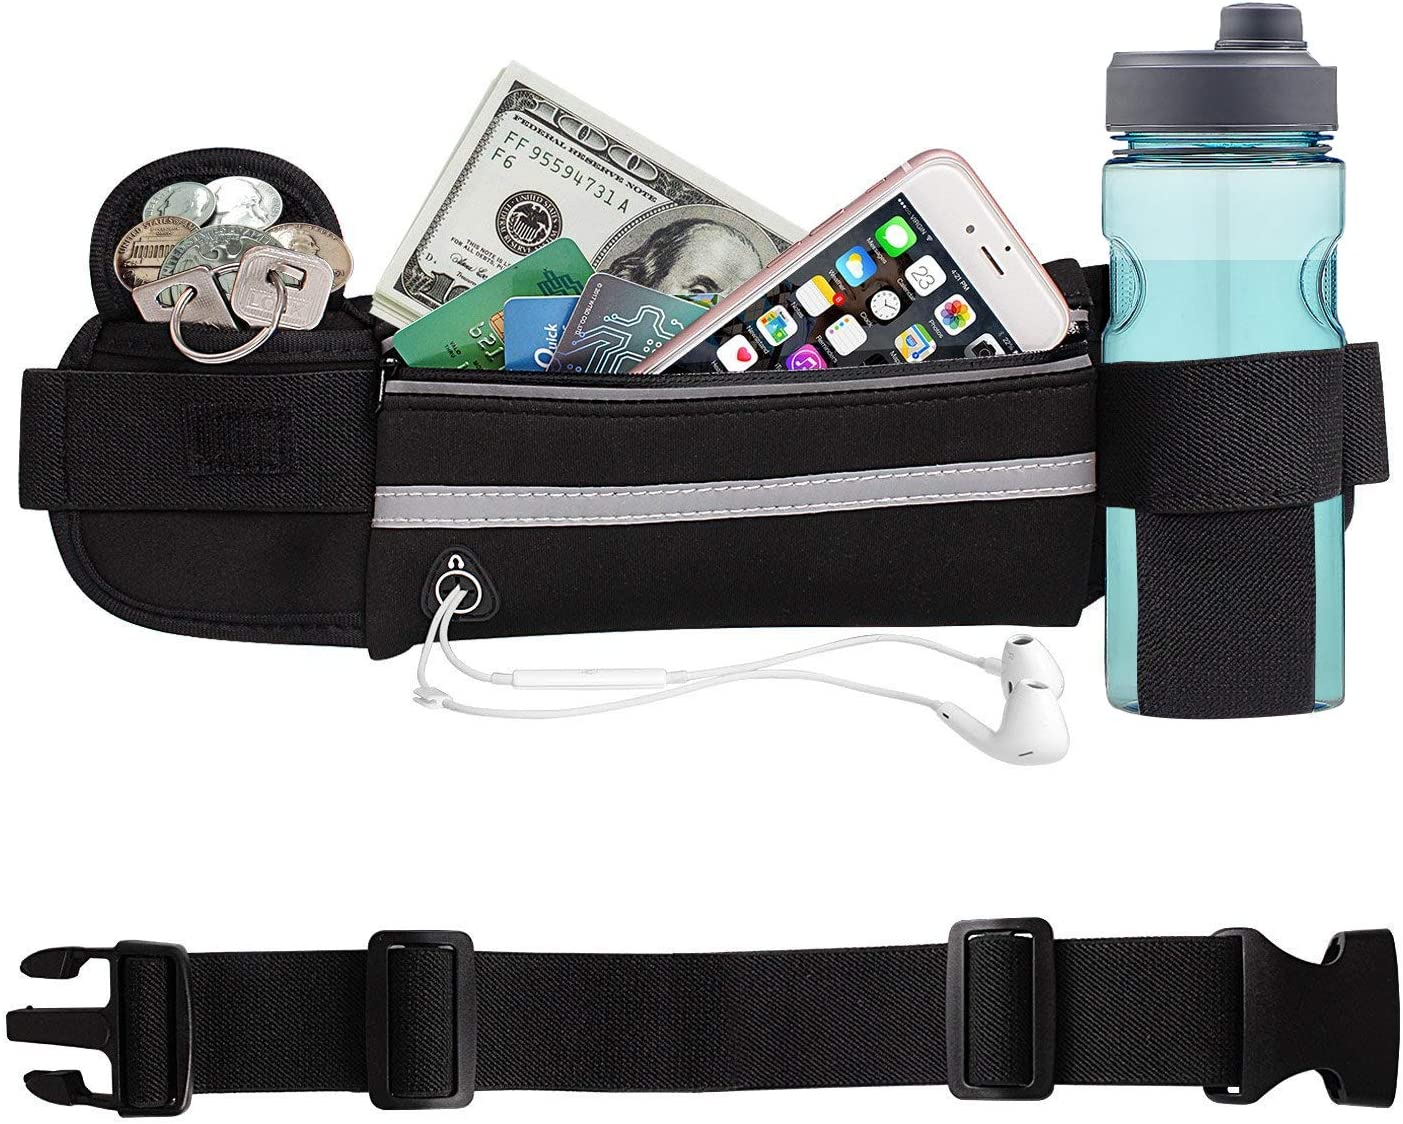 Aolerx Running Belt, Sweatproof and Waterproof, Sports Fanny Pack with Water Bottle Holder, Machine Washable,Can Hold Cash Keys Cards Phone Below 6.5